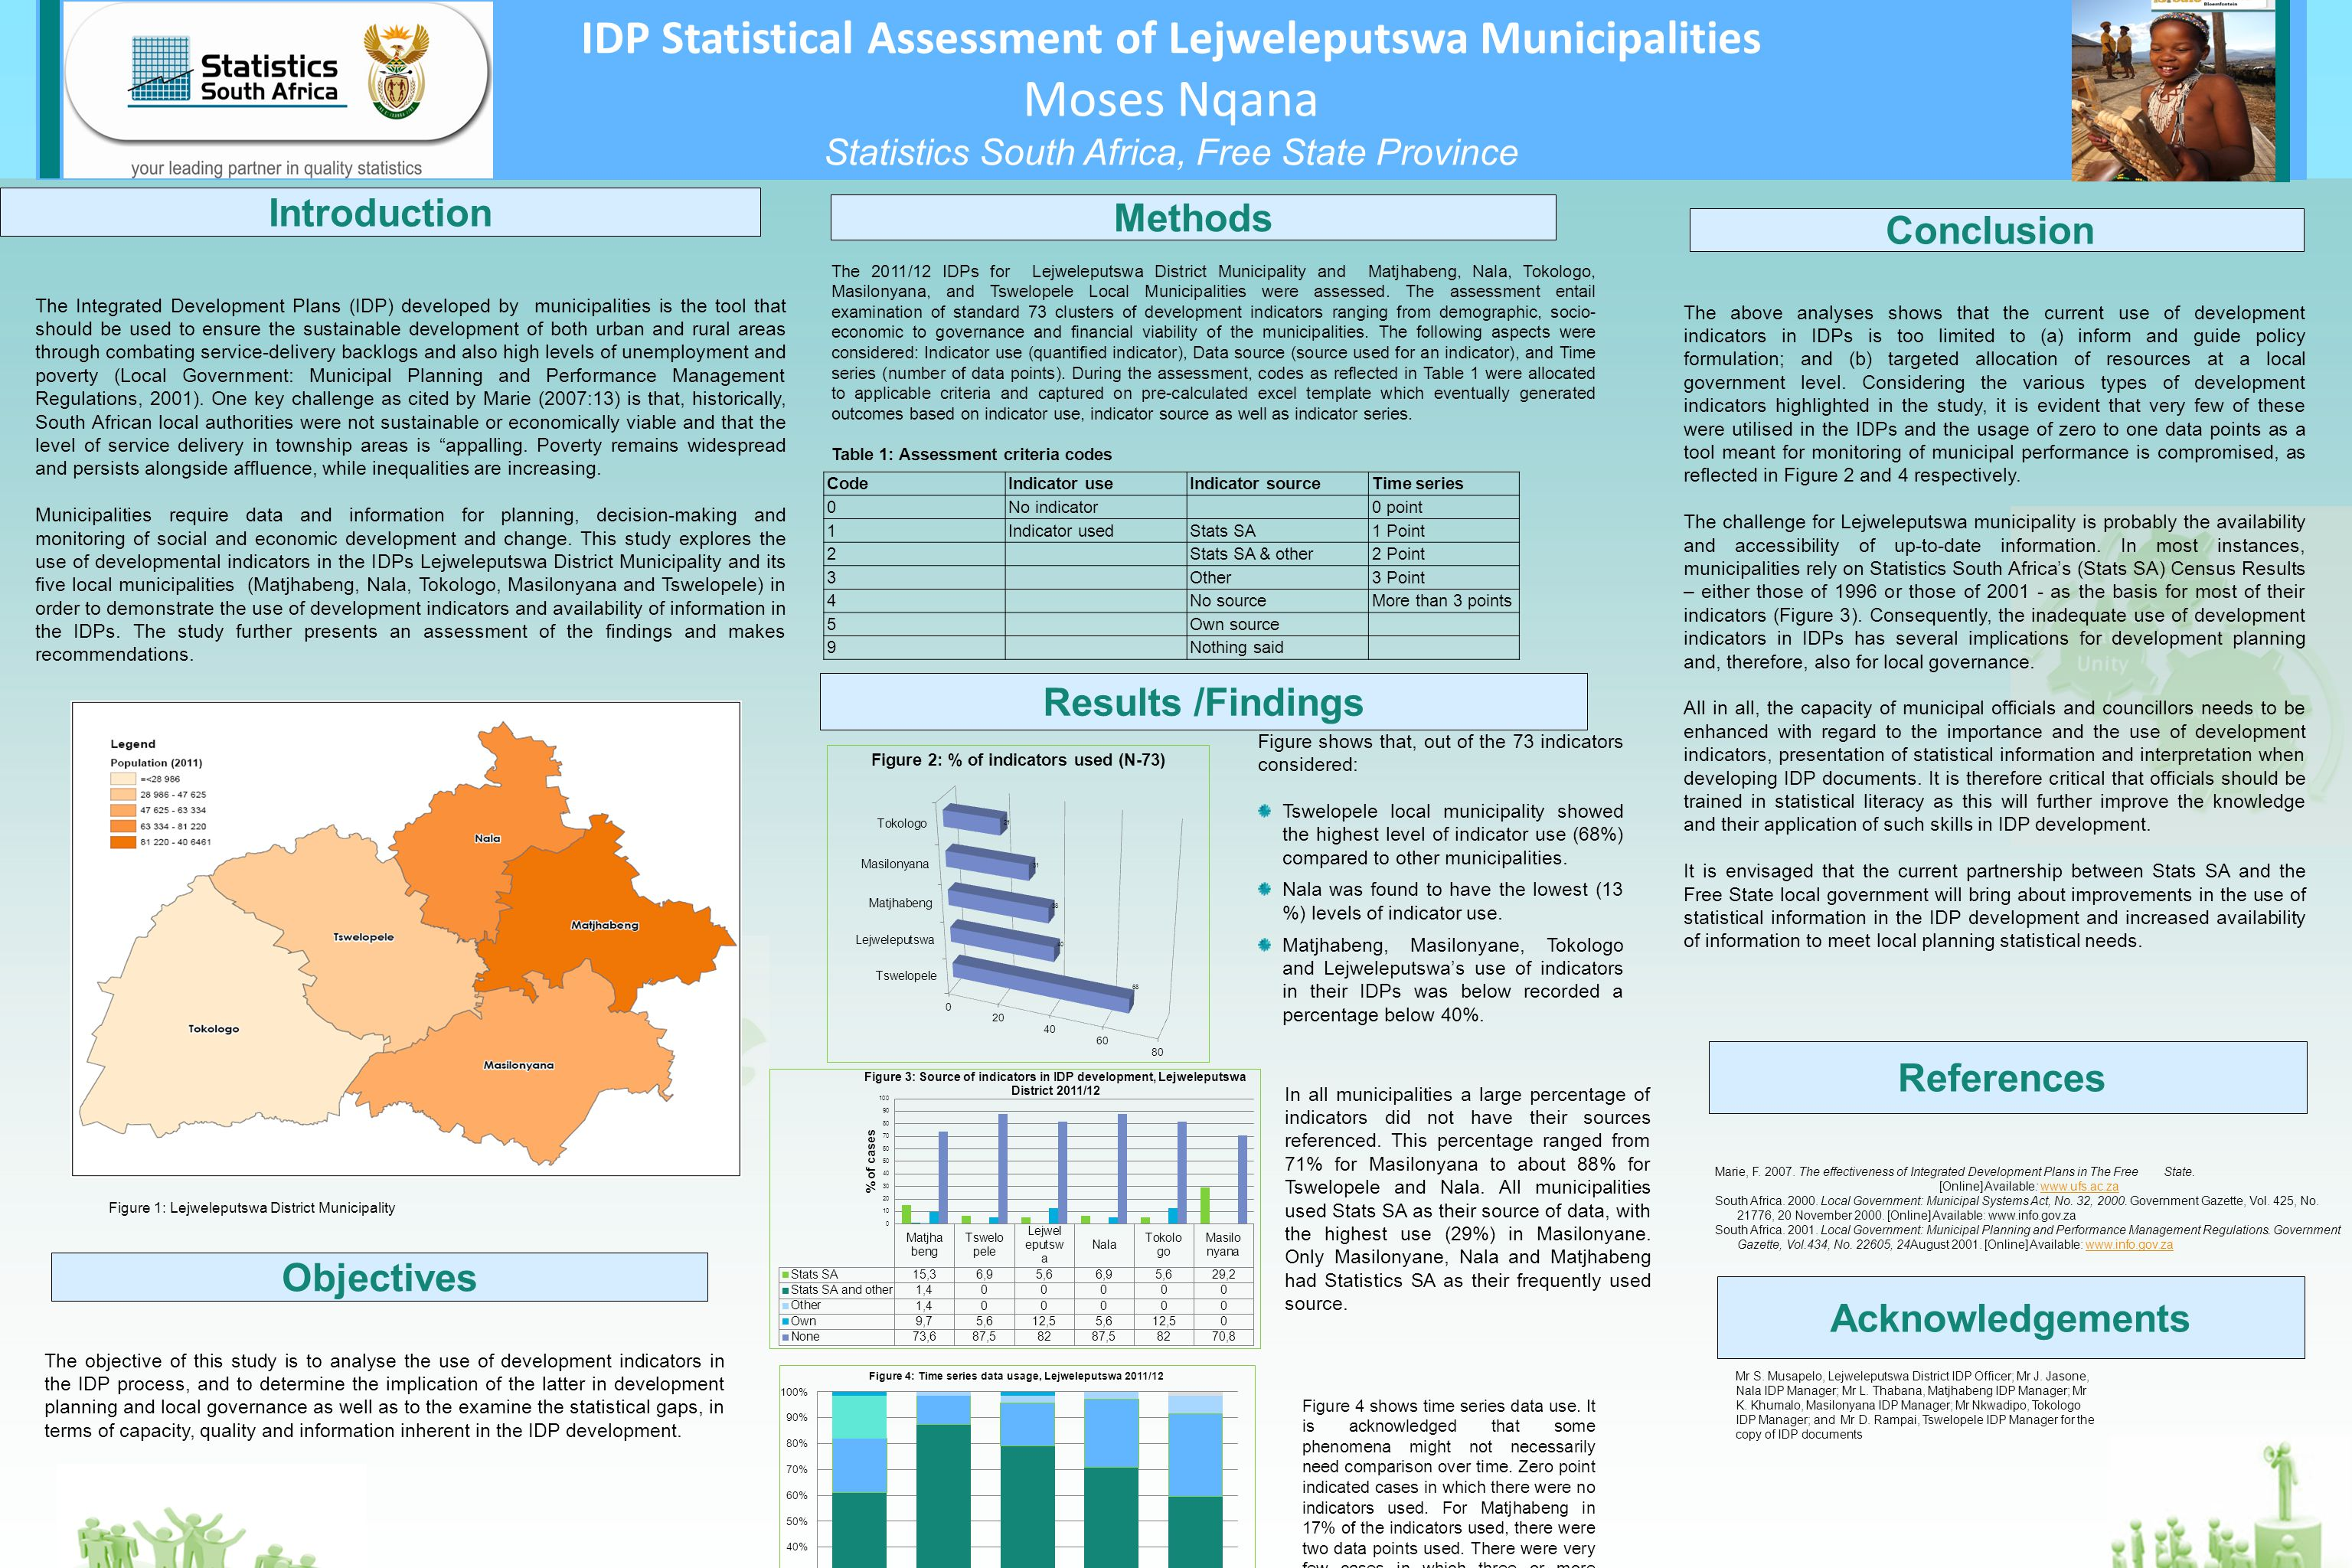 IDP Statistical Assessment of Lejweleputswa Municipalities Moses Nqana Statistics South Africa, Free State Province Methods Conclusion Objectives Results /Findings Marie, F.